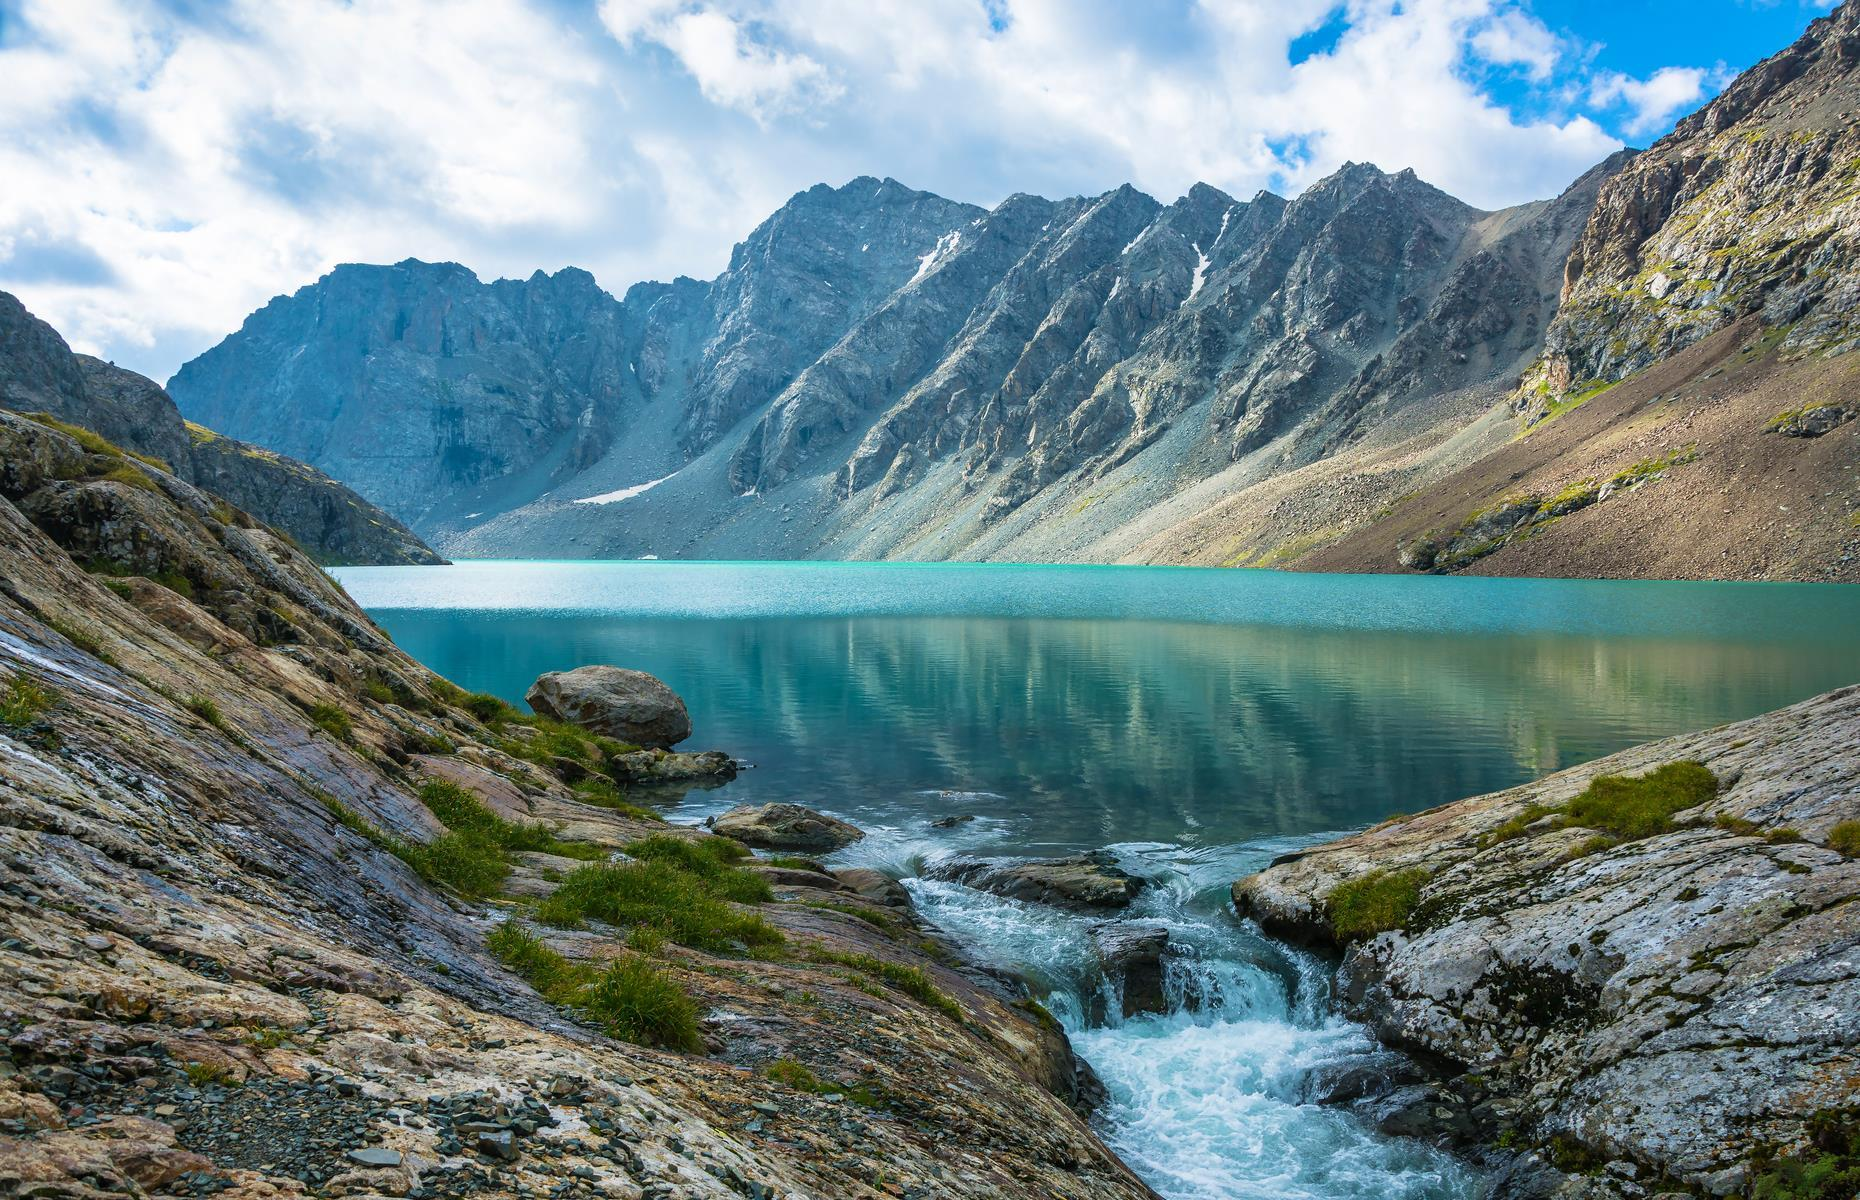 Slide 4 of 59: As far as lakes go, Ala-Kul is one of the world's most impressive. Nestled at an altitude of over 11,483 feet (3,500m) inside the Terskey Alatau mountain range in Kyrgyzstan, this stunning pool is one of the globe's natural gems. Enclosed by snow-capped peaks, the glacial lake covers just 0.5 square miles (1.5sq km) but its vibrant cyan waters are enough to entice and delight even the most jaded of explorer.